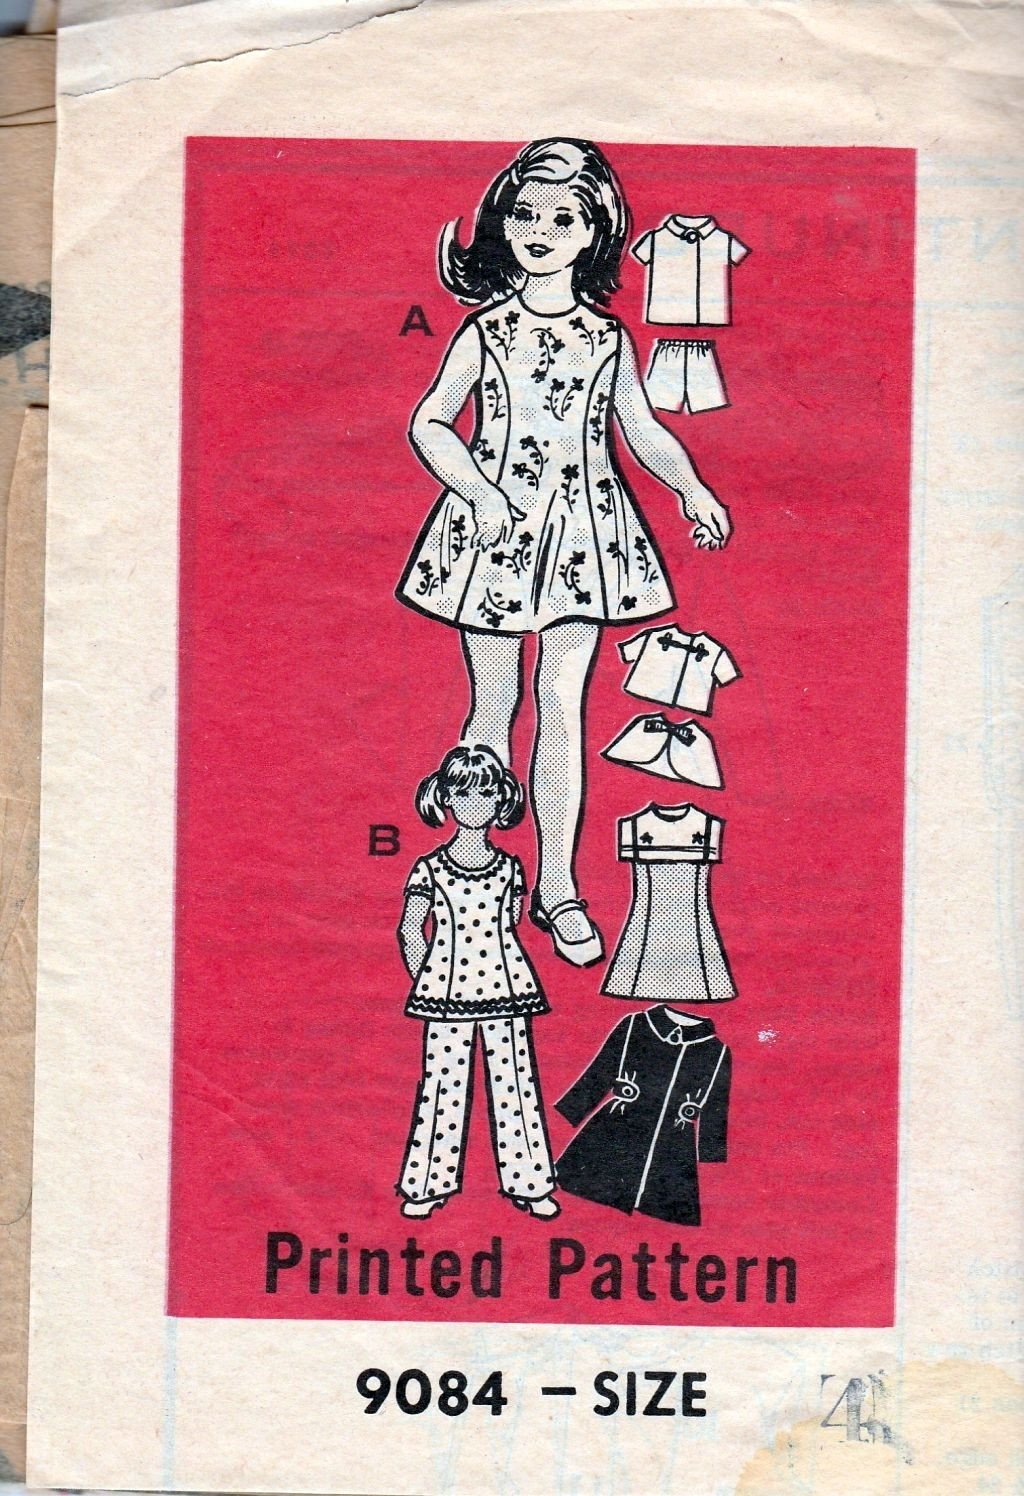 Mail Order 9084 Vintage 1960's Sewing Pattern Little Girls Dress Coat Pants - VintageStitching - Vintage Sewing Patterns